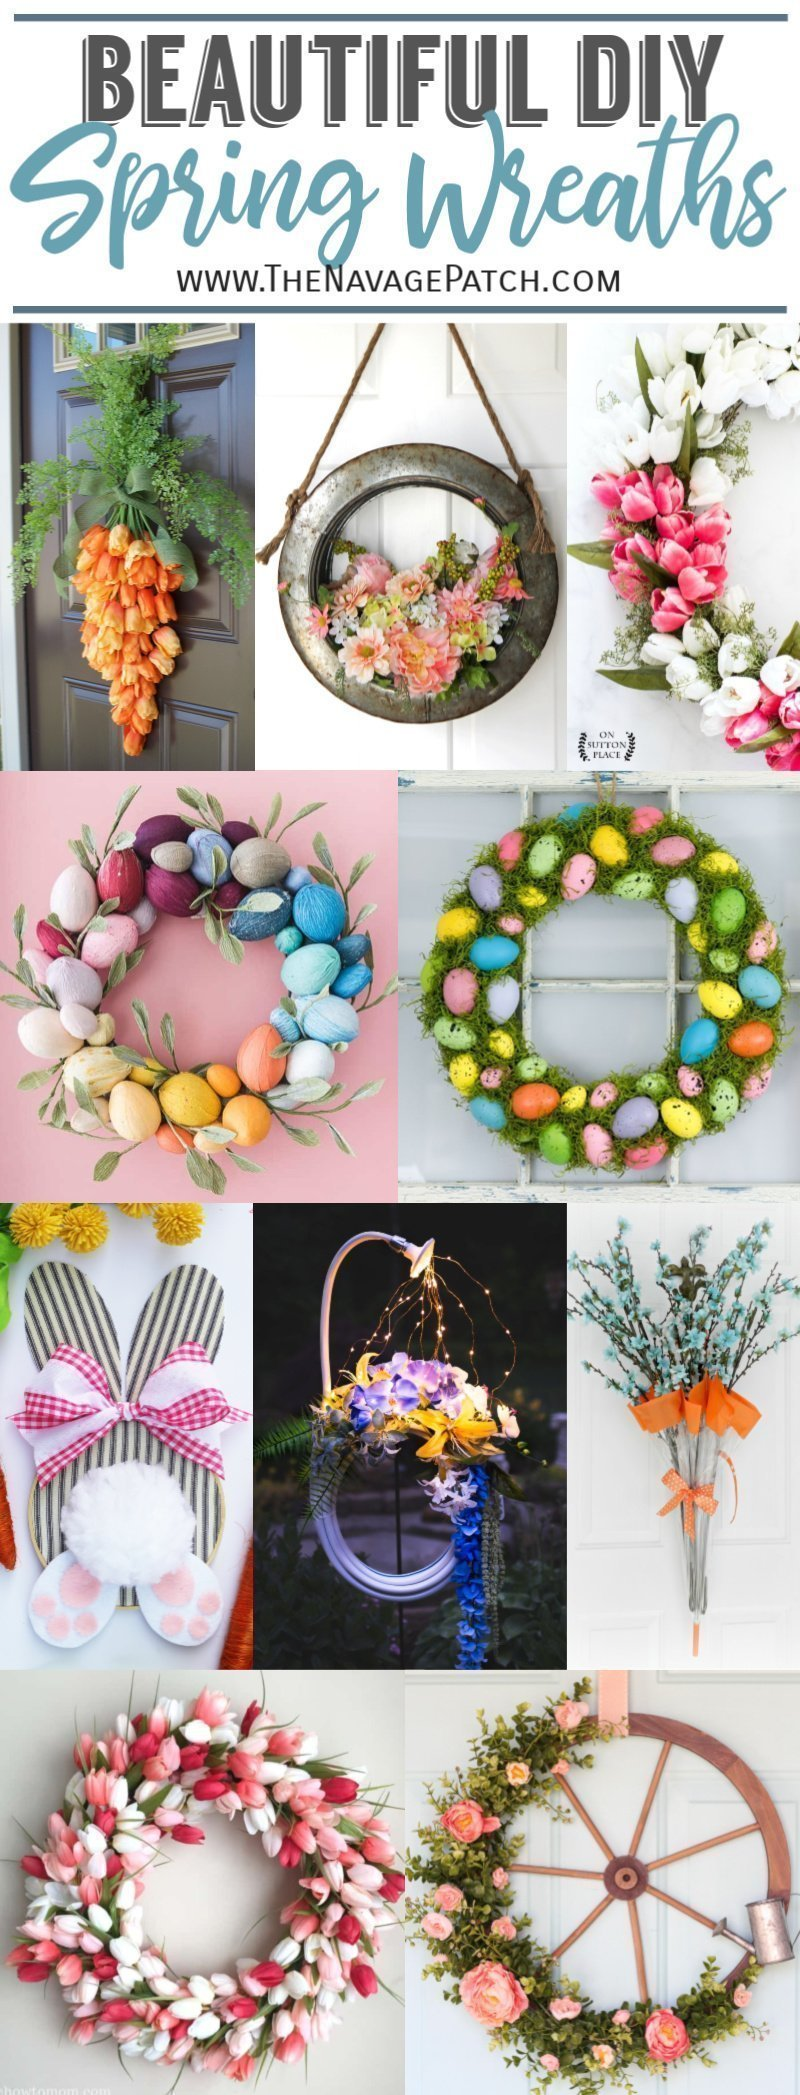 Beautiful Easter and Spring Wreaths pin image